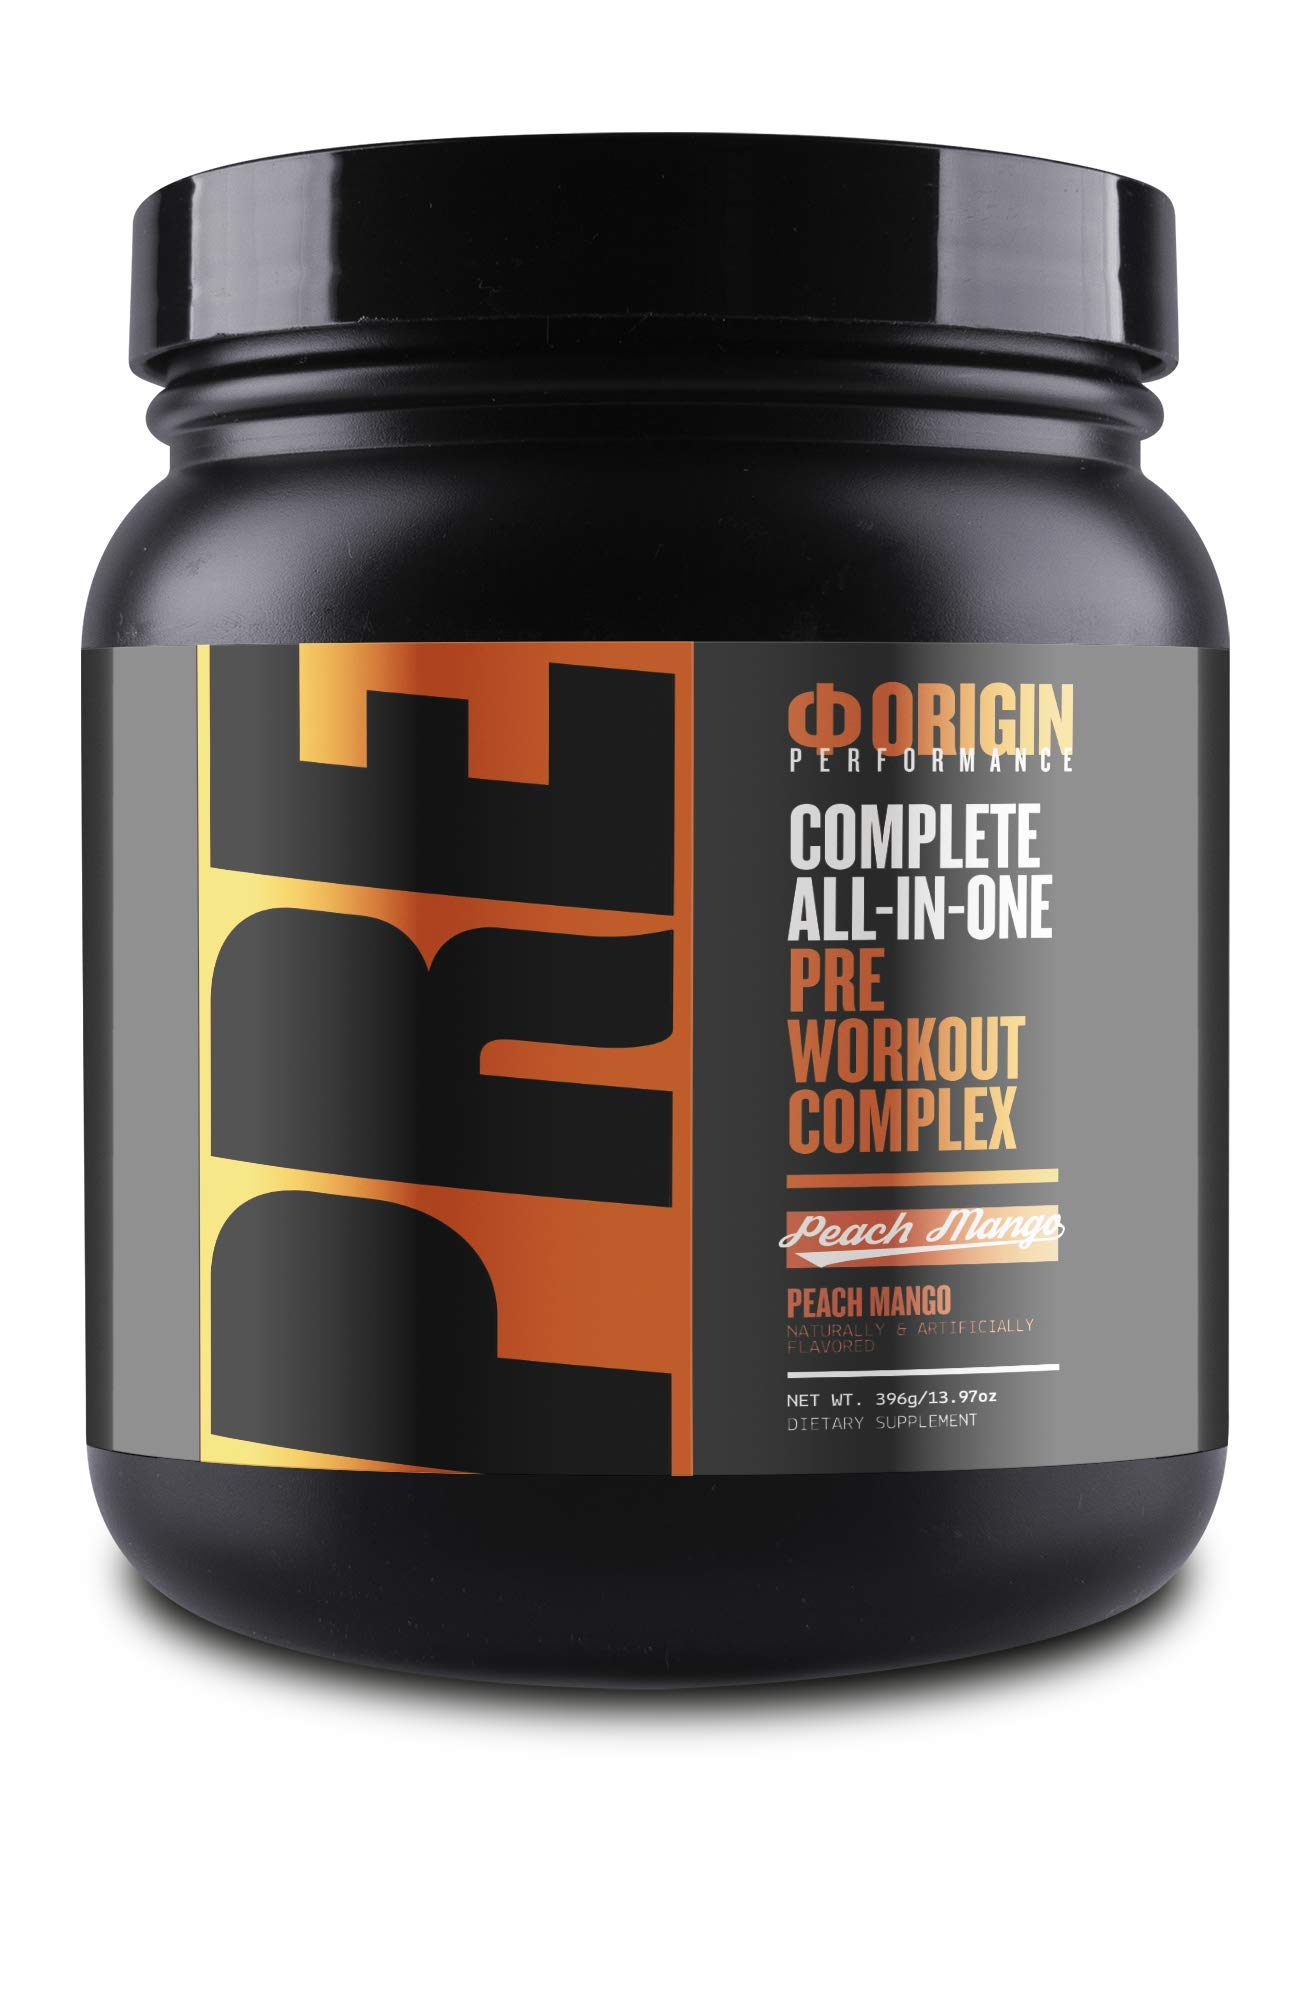 Origin Uncompromised Pre-Workout (Peach Mango) - Complete All-in-One Pre Workout Complex